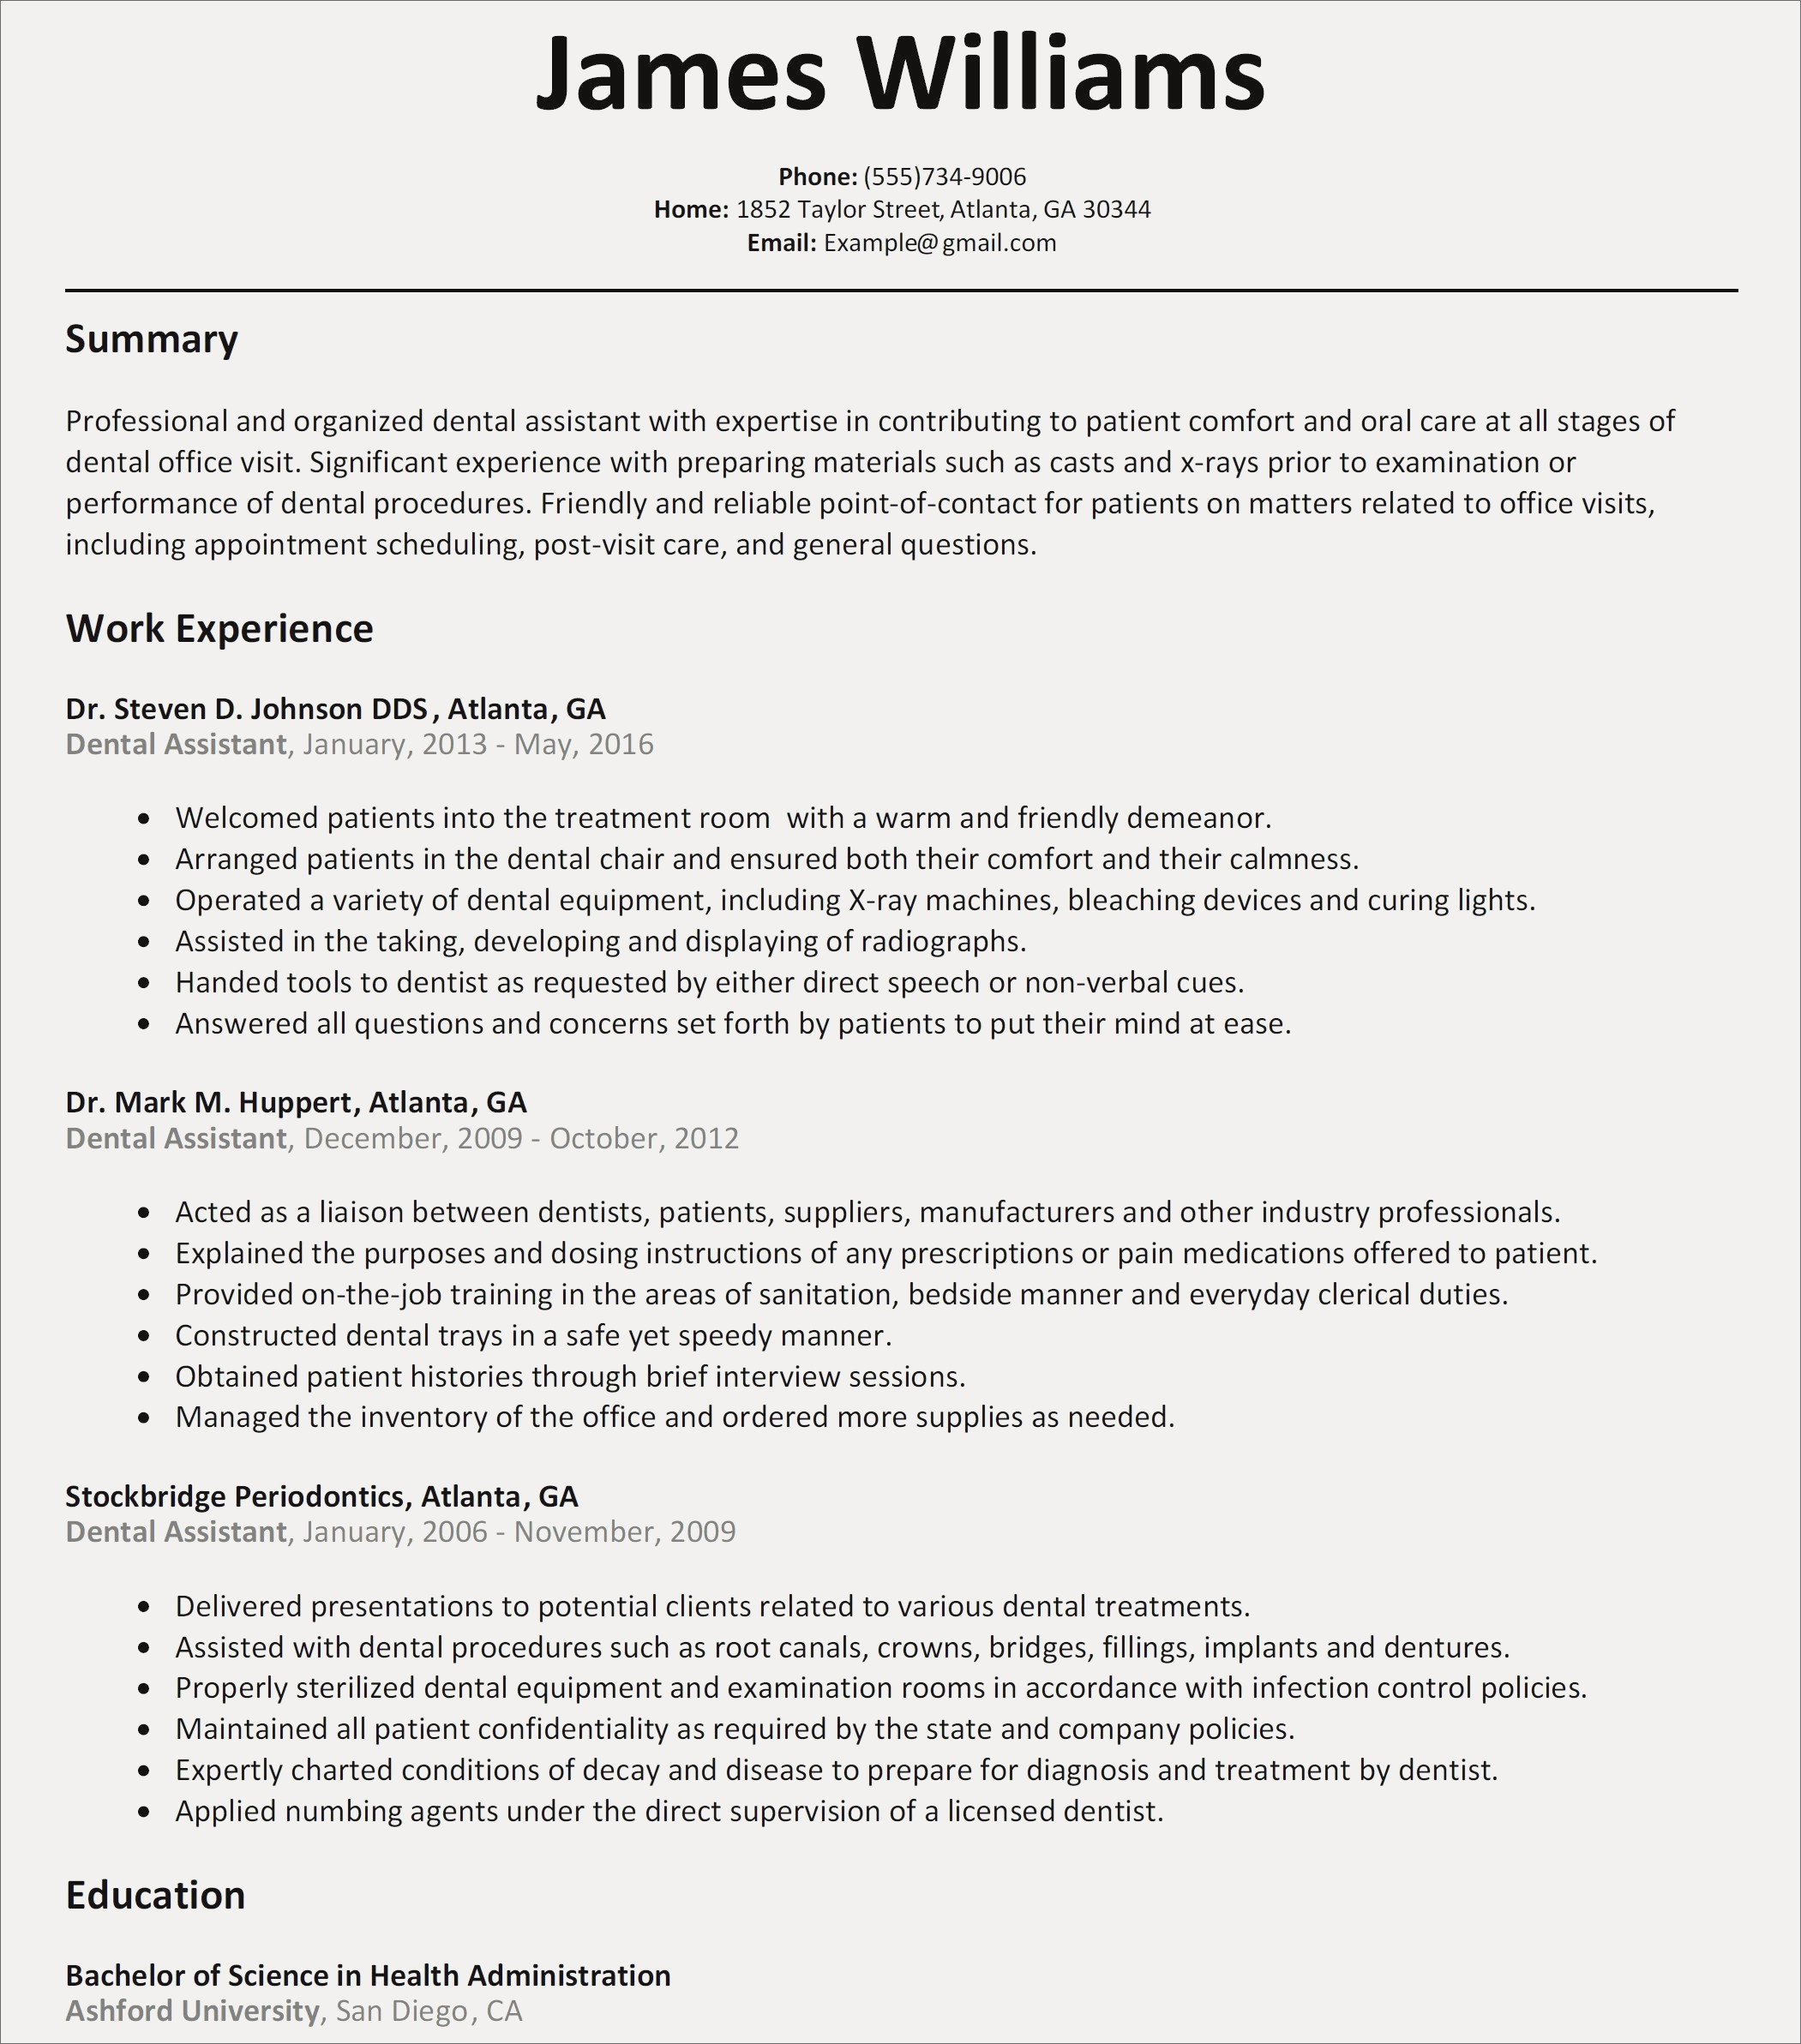 Performance Resume Templates - How to Make A Good Cover Letter New How to Write A Cover Letter for